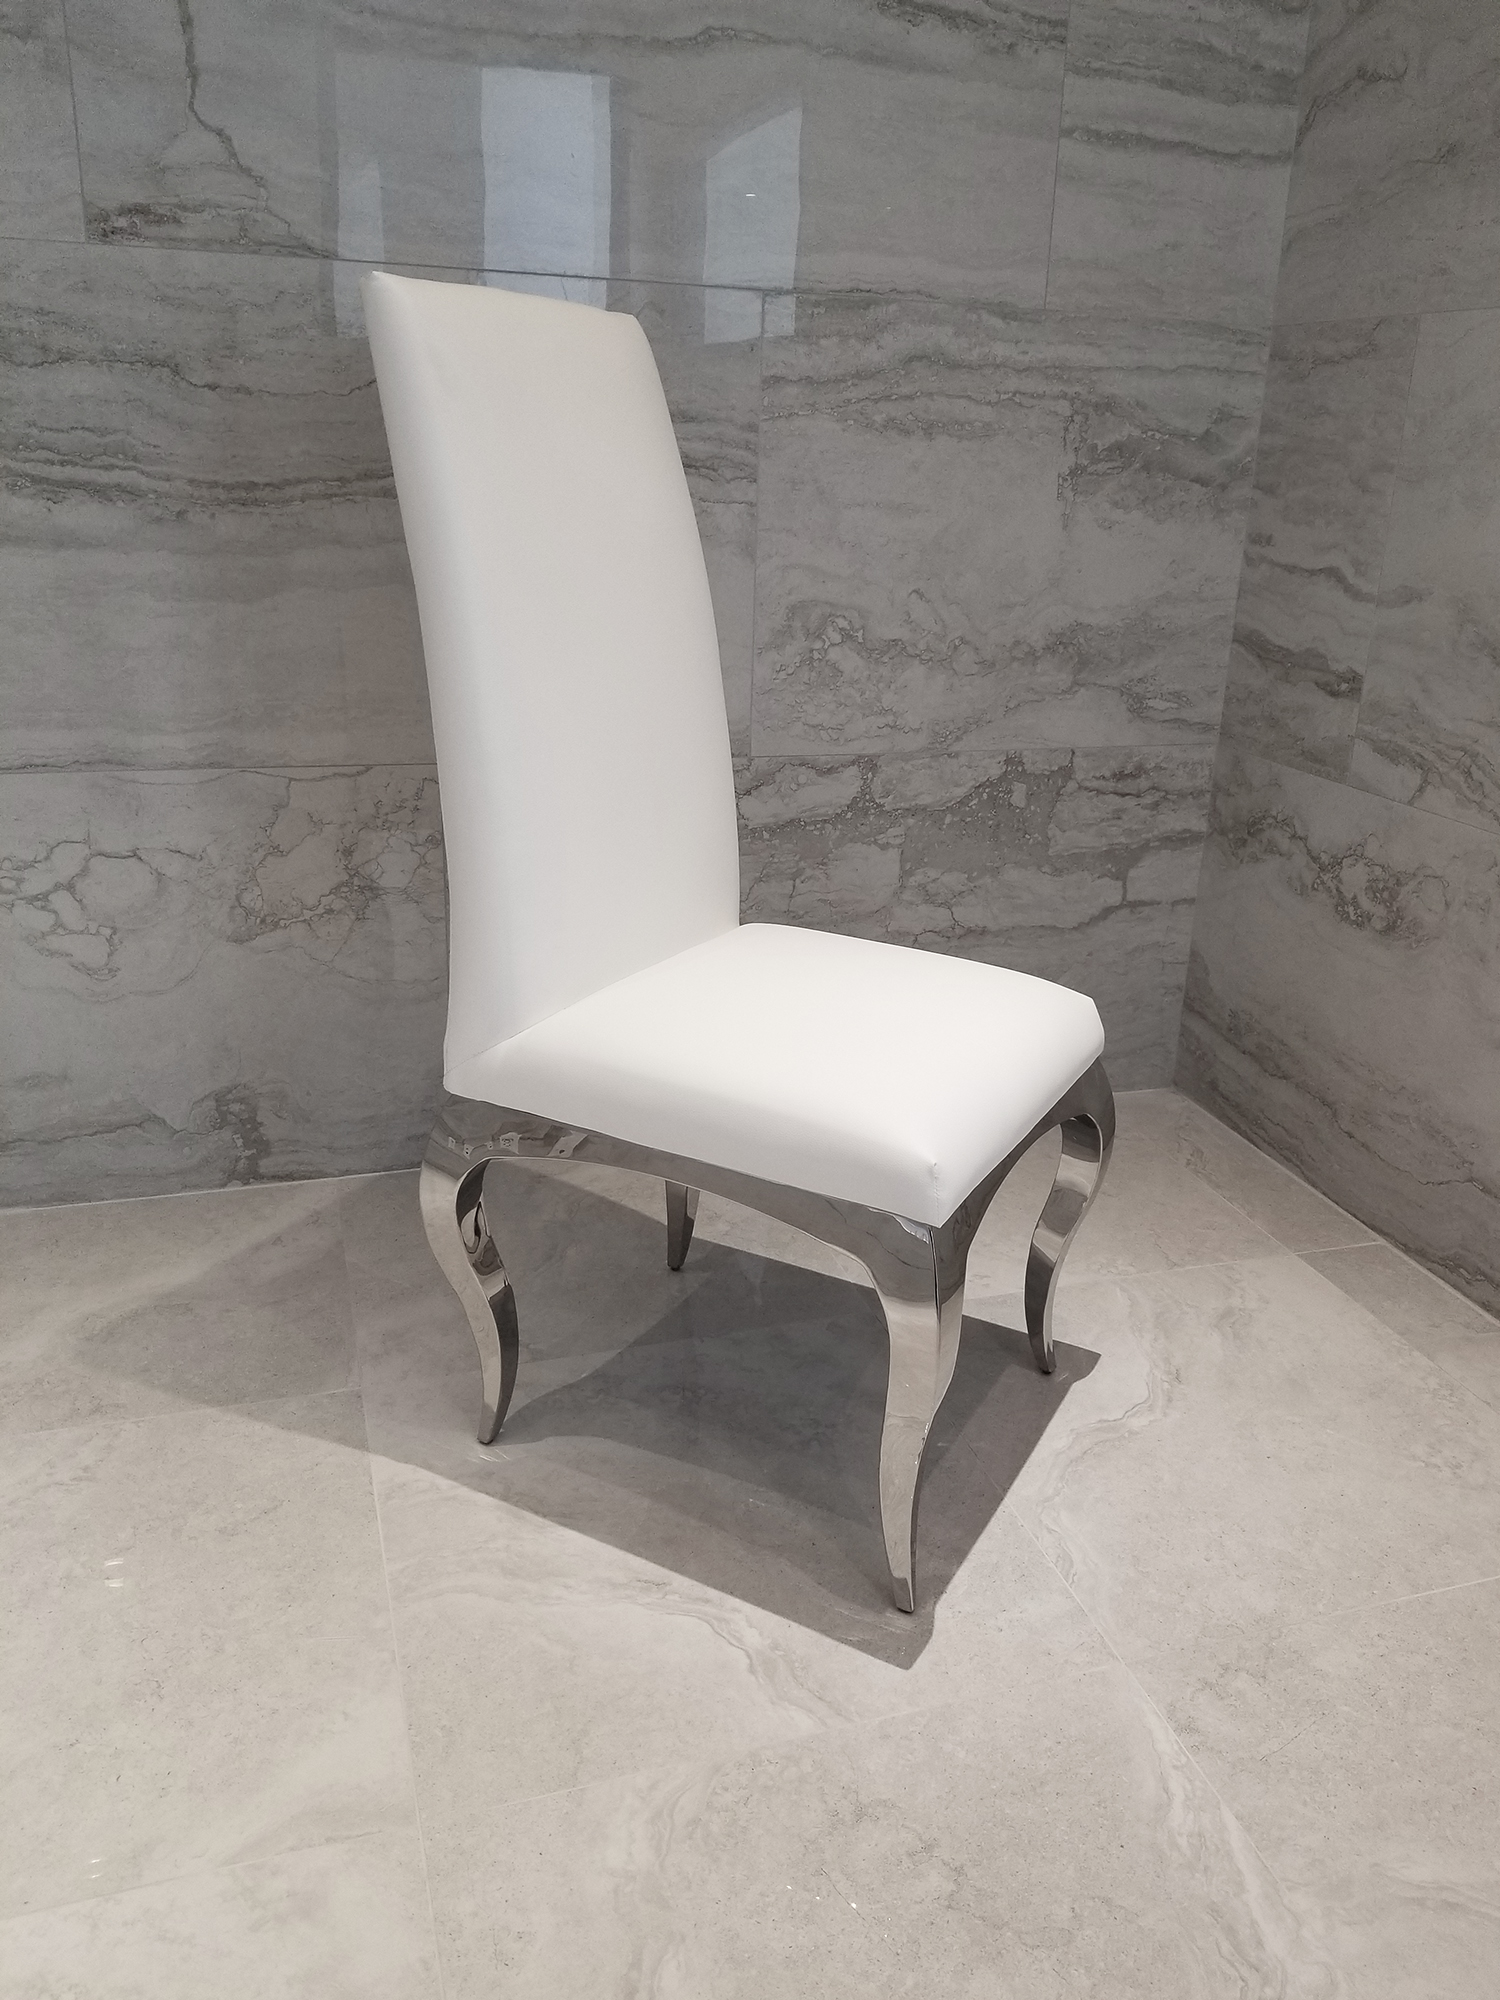 Tricase Modern Dining Chair Upholstered In White Leather